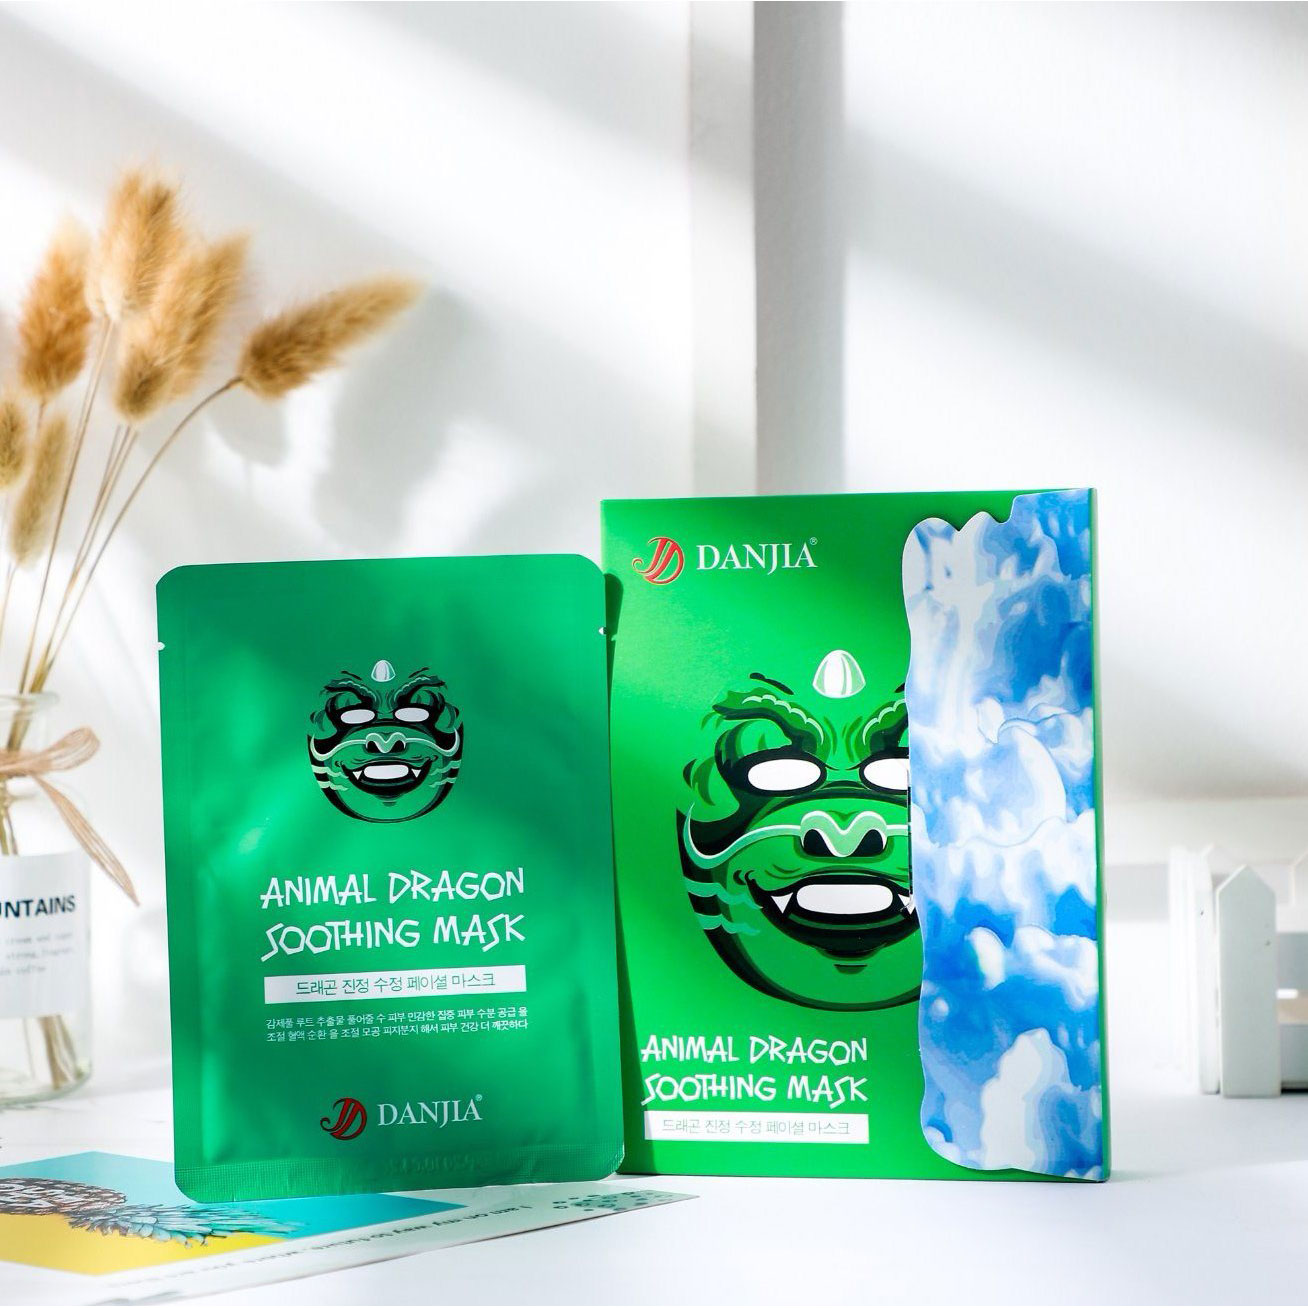 SNP Dragon Soothing Mask (10piece)